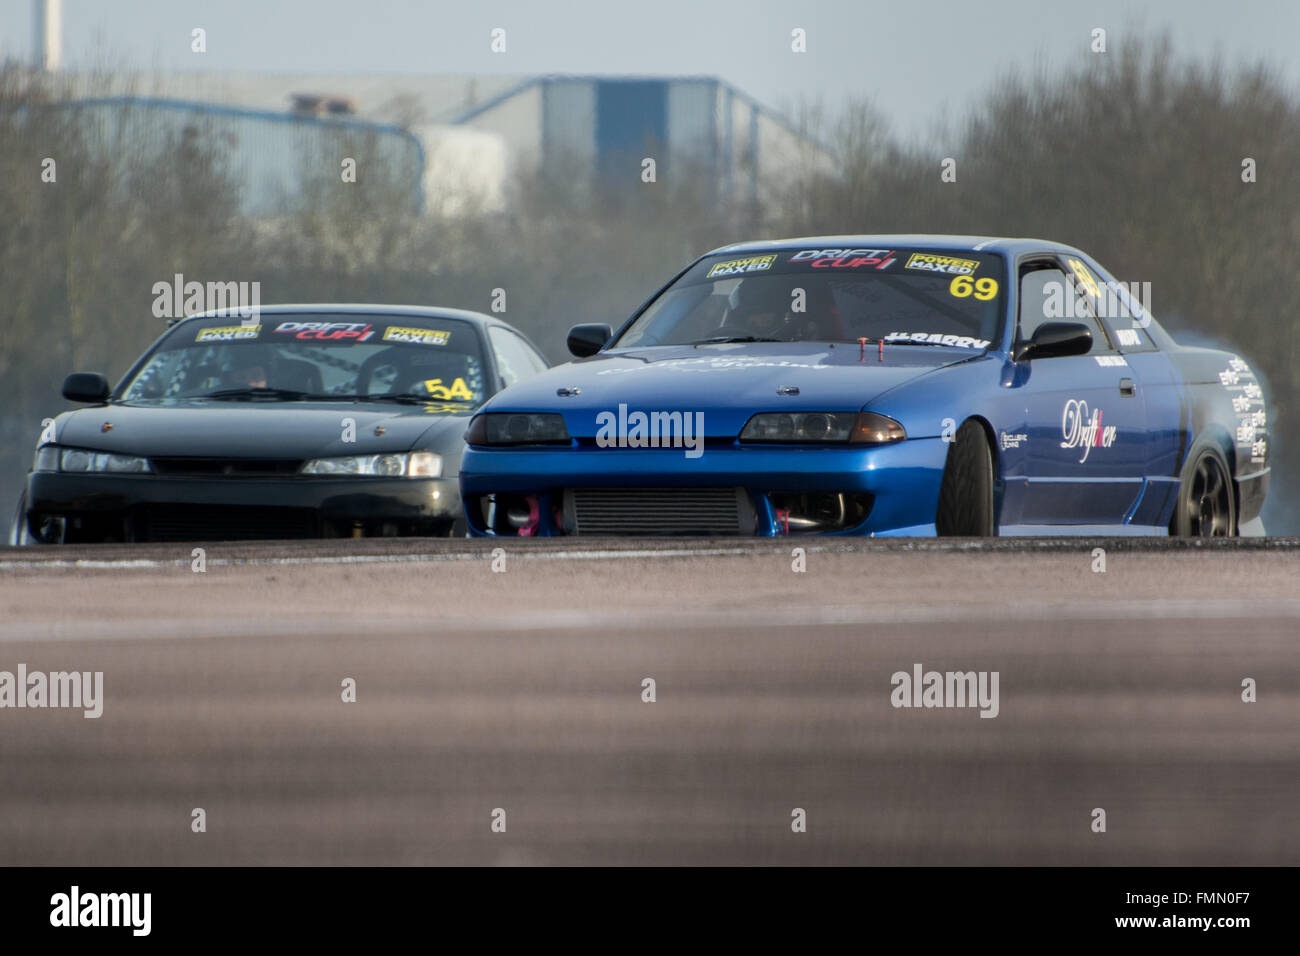 Corby Uk Mar Drift Cars During Drift Matsuri At